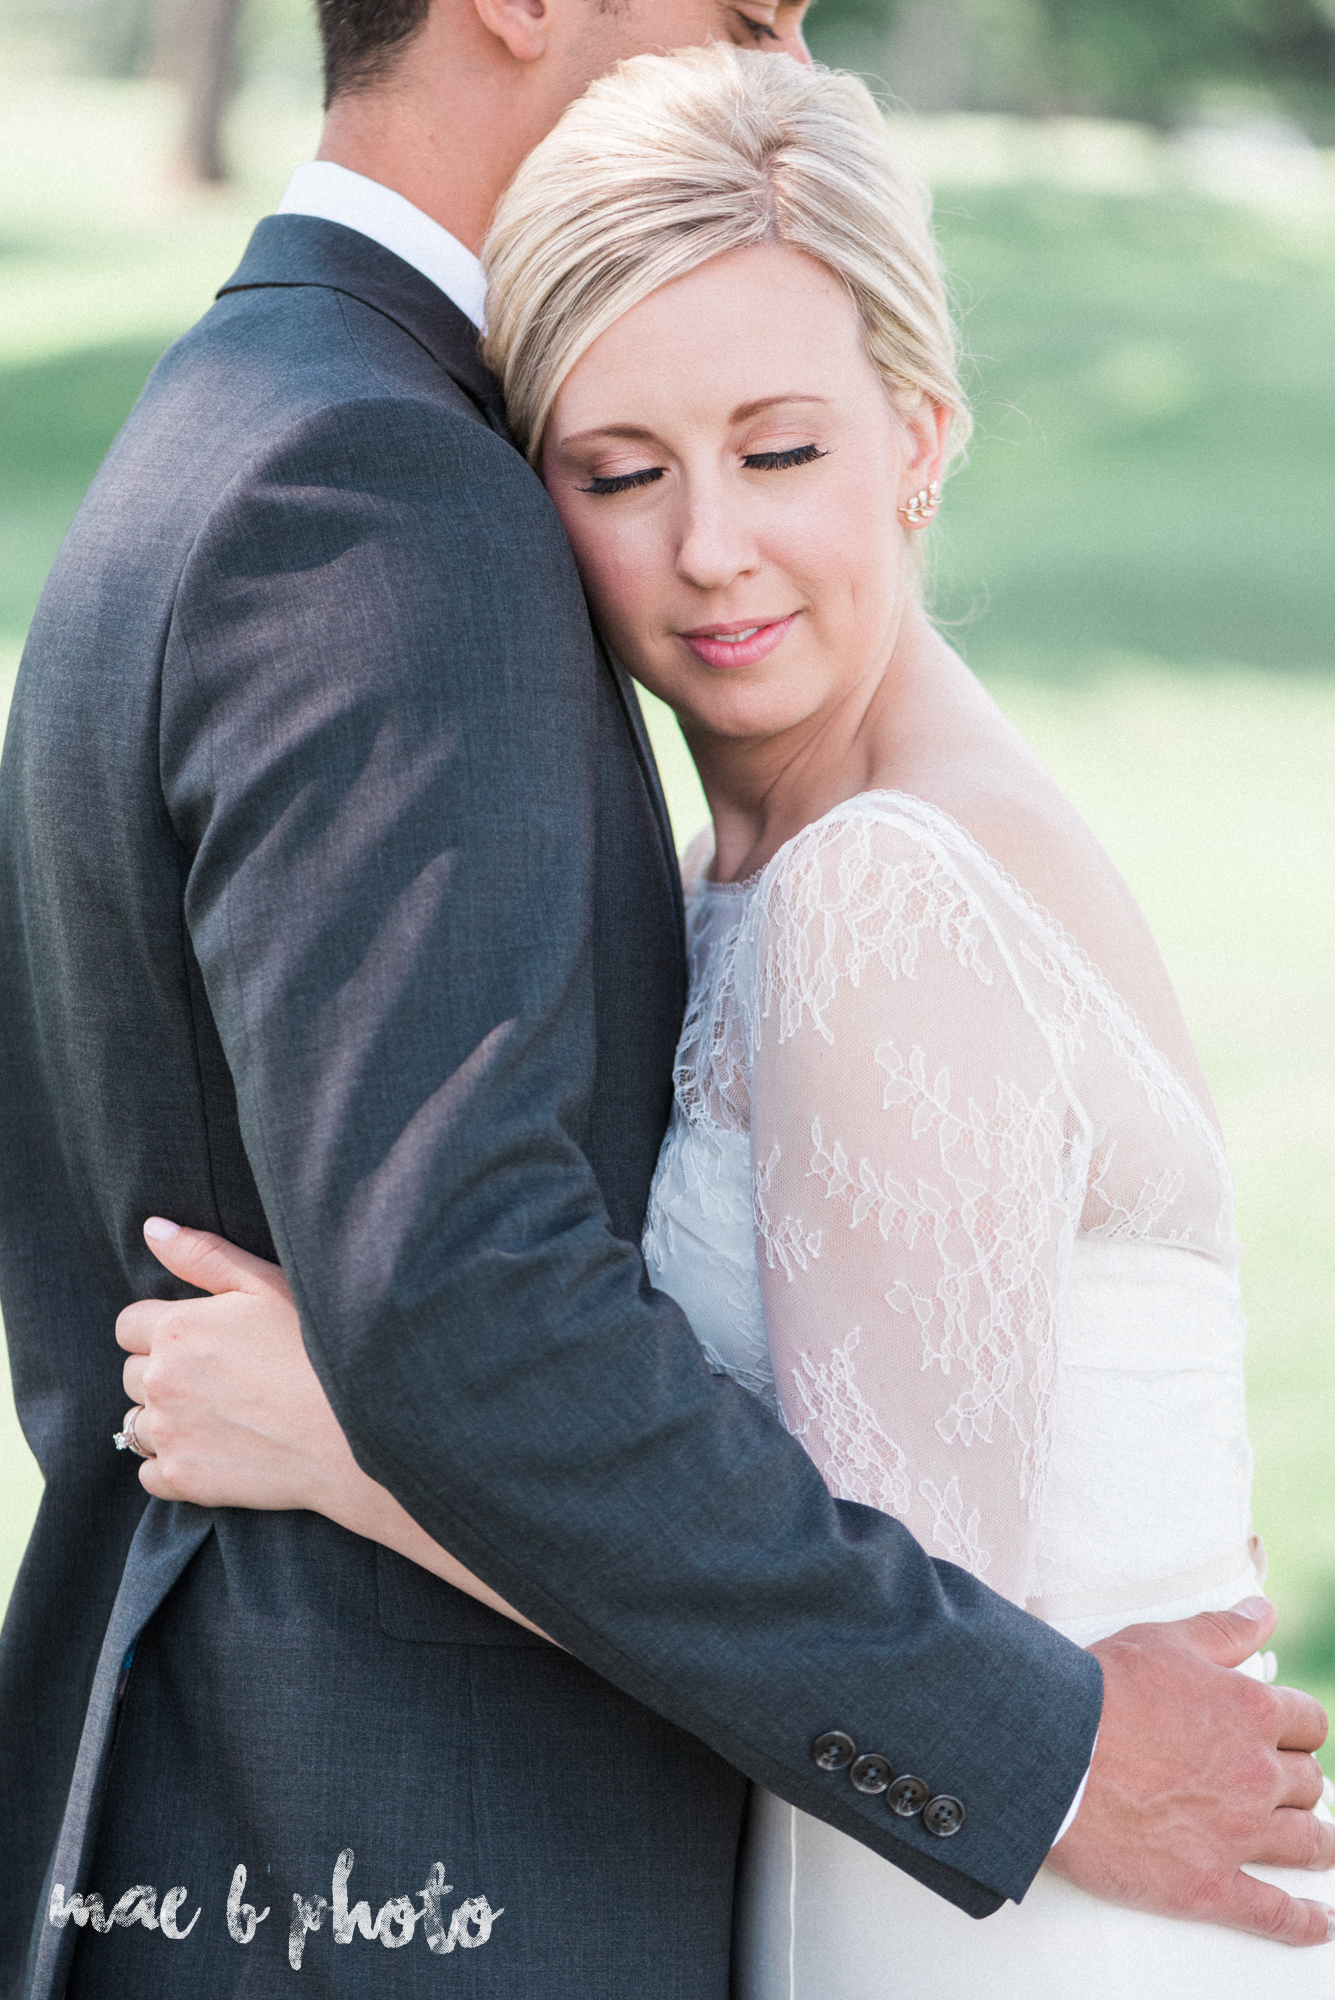 emily and michael's industrial chic summer country club wedding at the lake club in poland ohio photographed by cleveland wedding photographer mae b photo-66.jpg